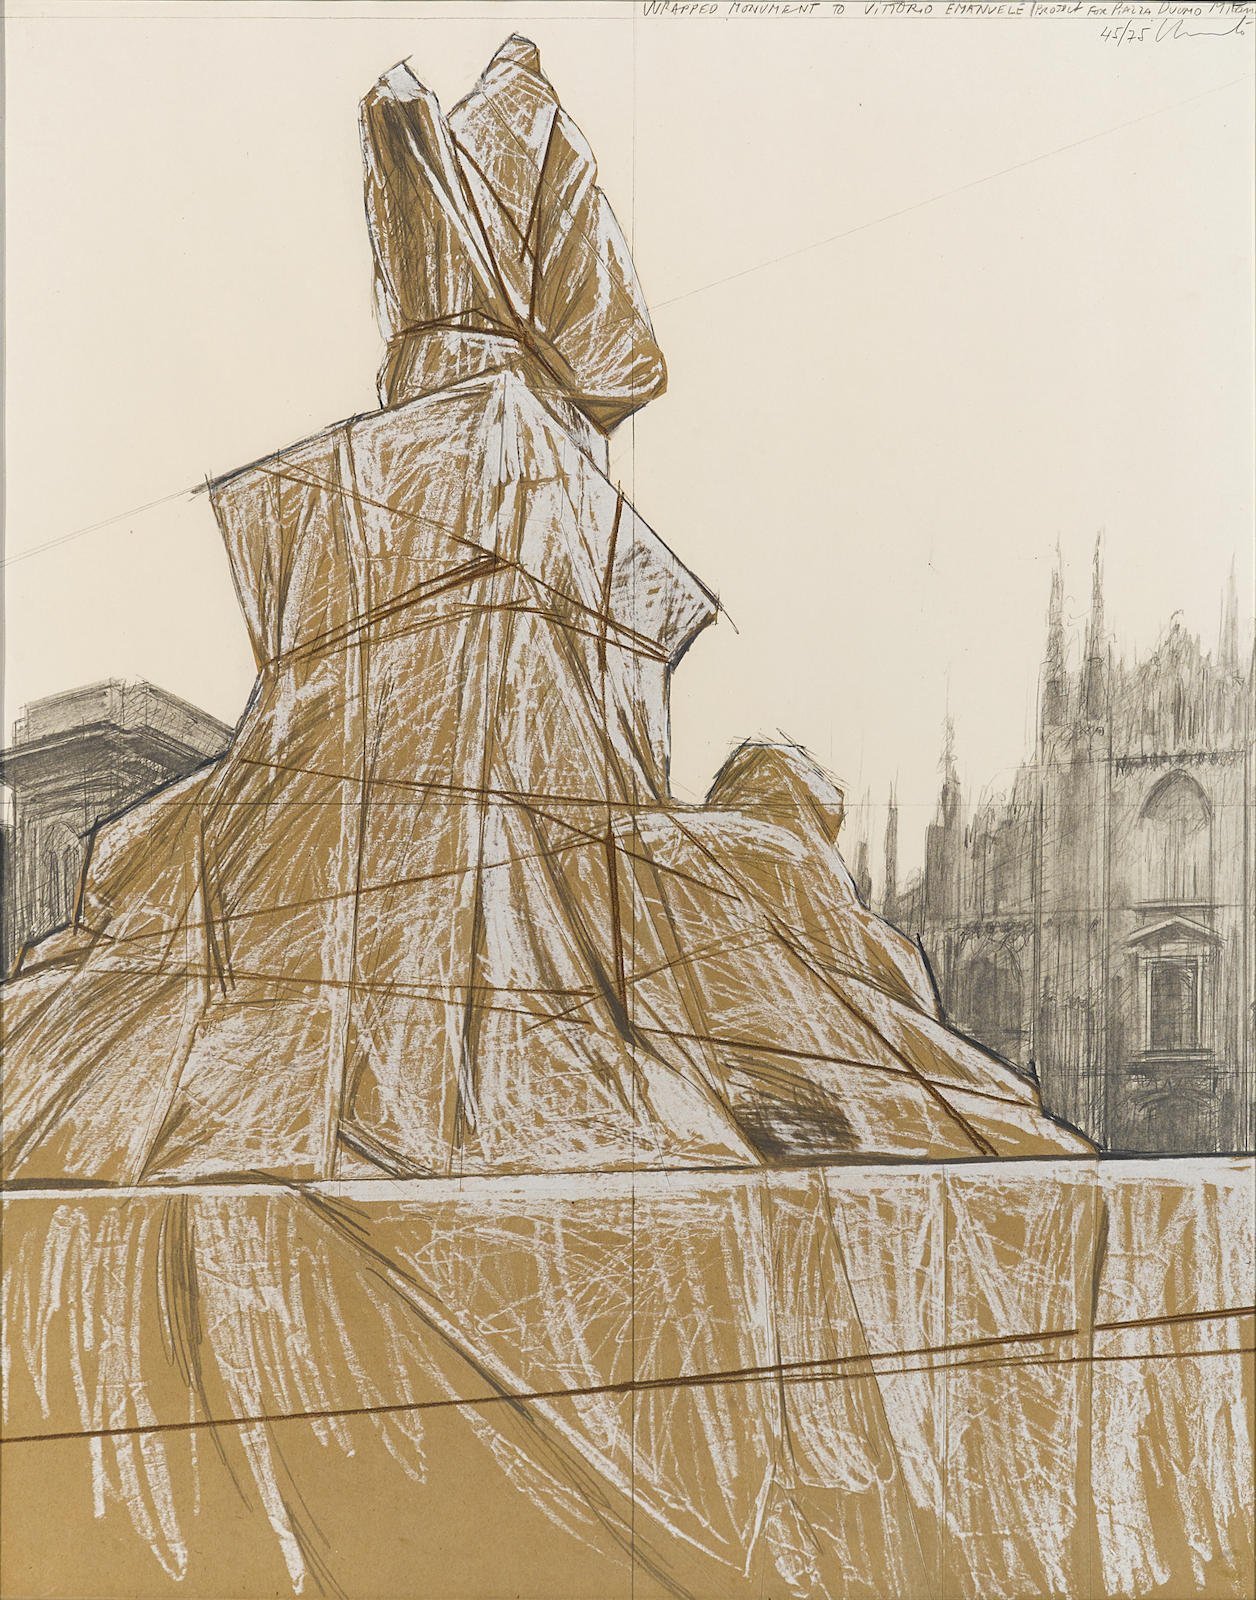 Christo and Jeanne-Claude-Wrapped Monument to Vittorio Emanuele, Project for Piazza del Duomo, Milan (S. & K. 79)-1975